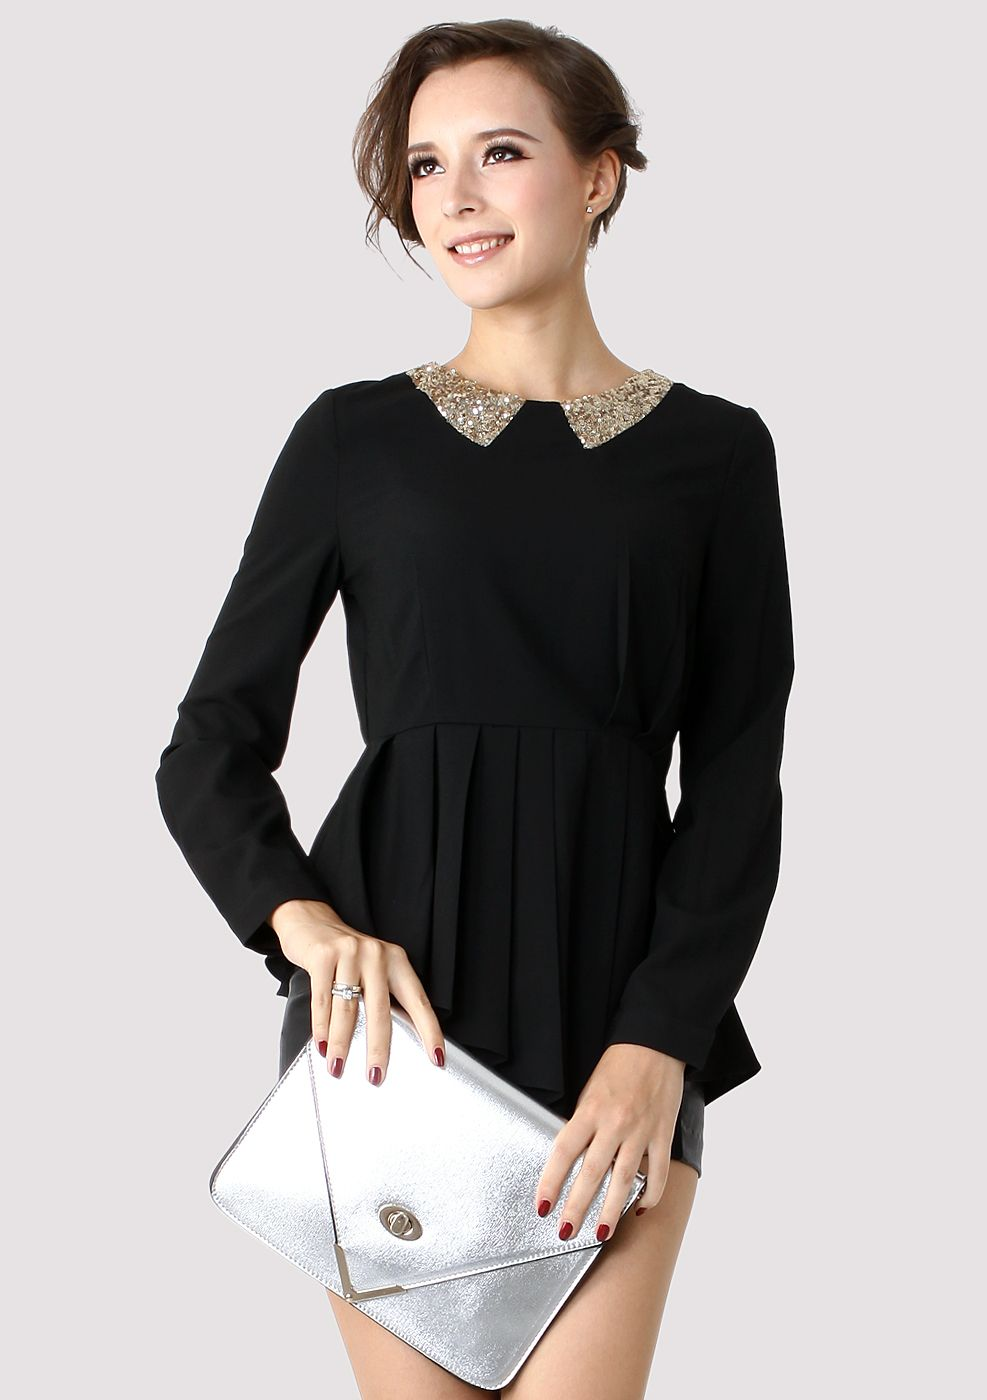 Black sequined collar on a peplum shirt. I'm sure I'd have a much longer skirt!